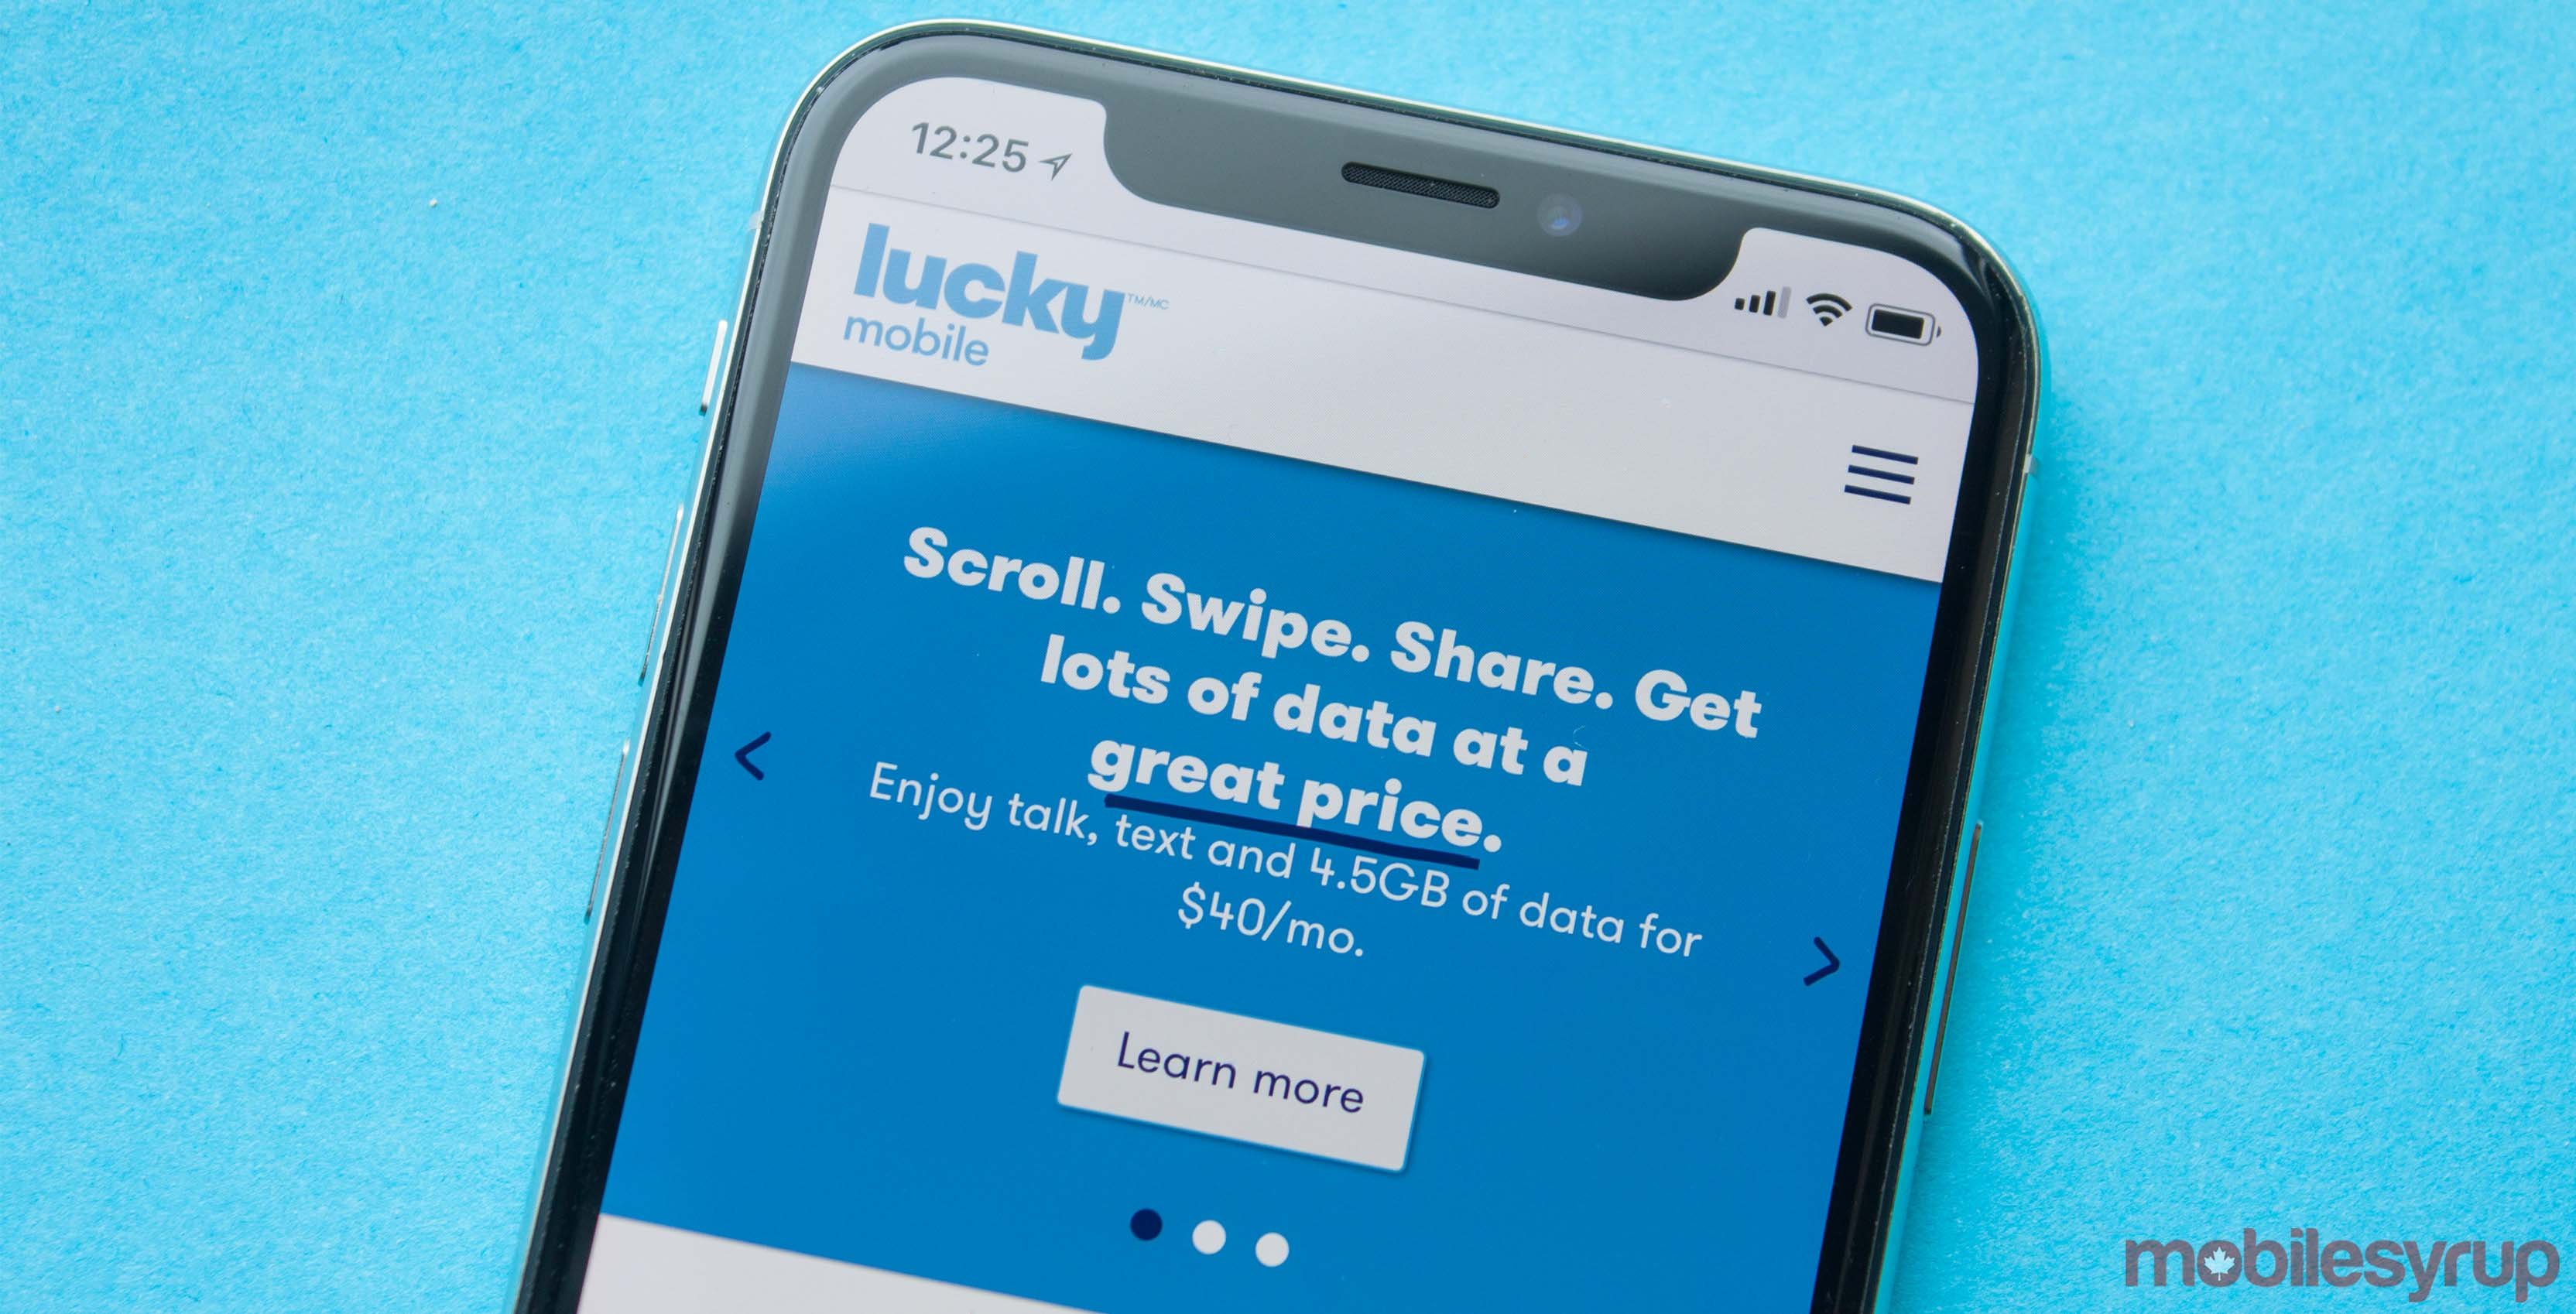 Lucky Mobile adds unlimited data with speeds throttled at